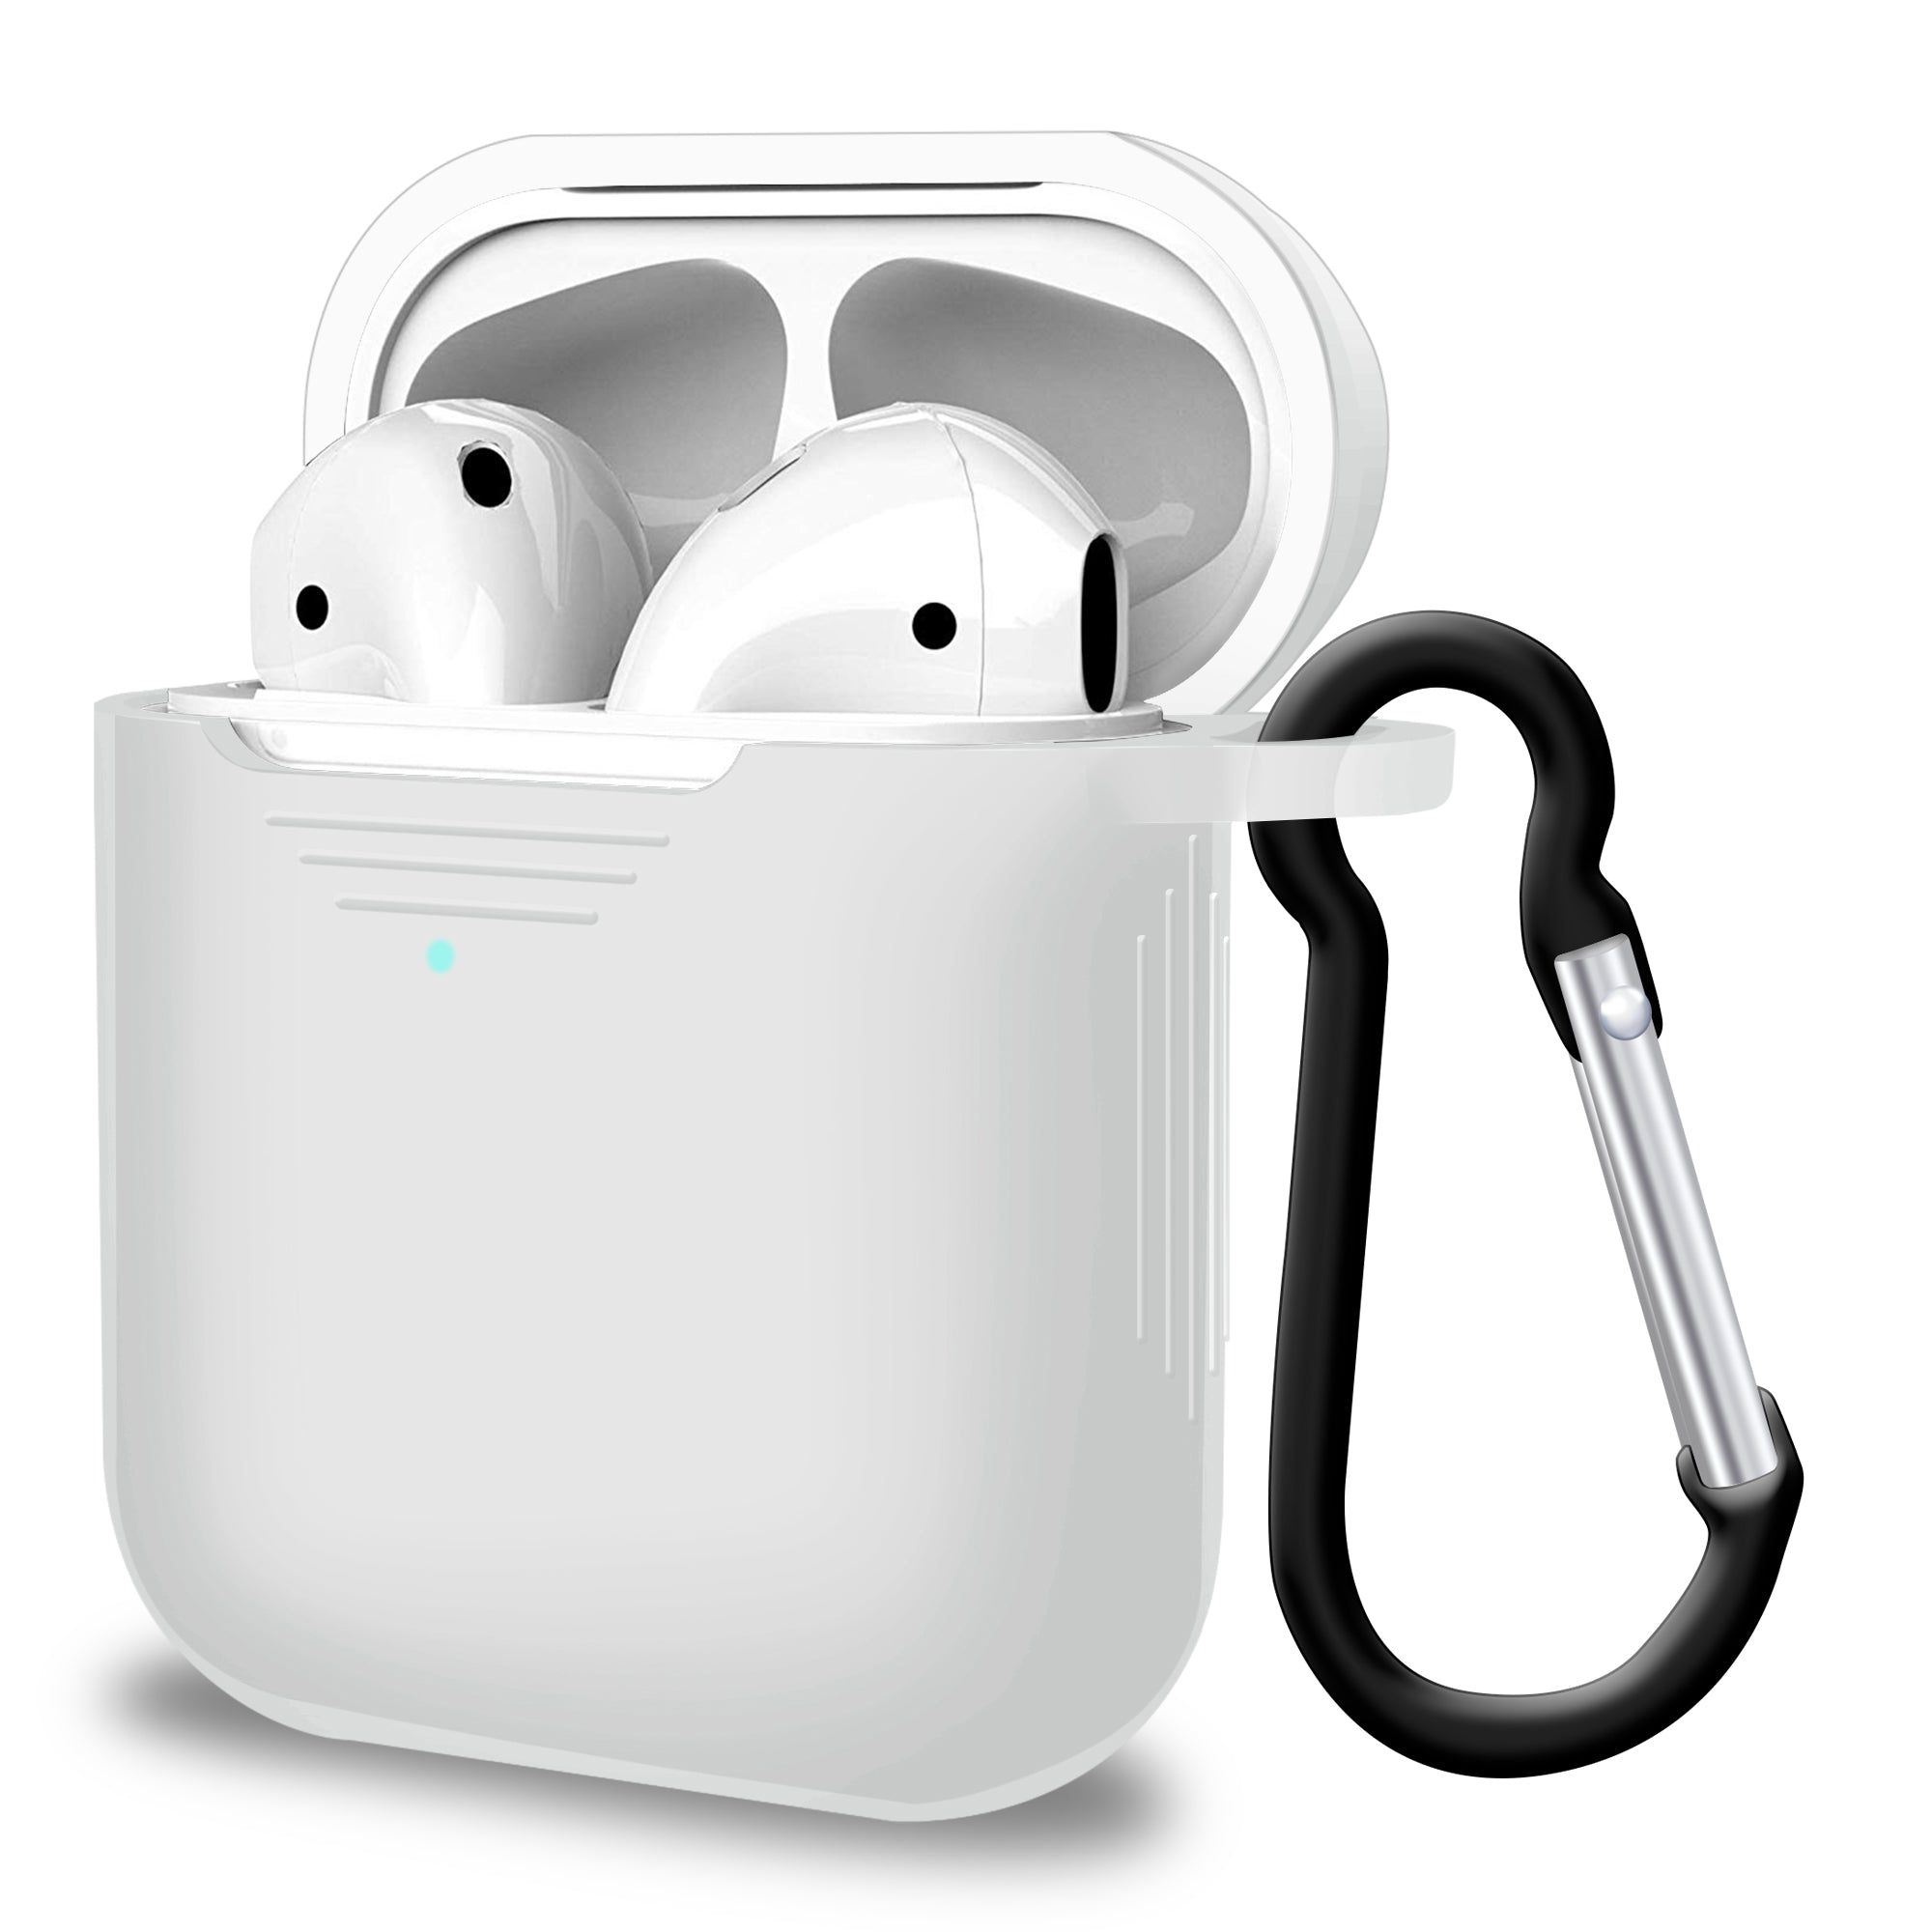 2 in 1 Apple Airpods Silicone Case Earphones Charging Skin Cover Clear, Audio Accessories by TradeNRG